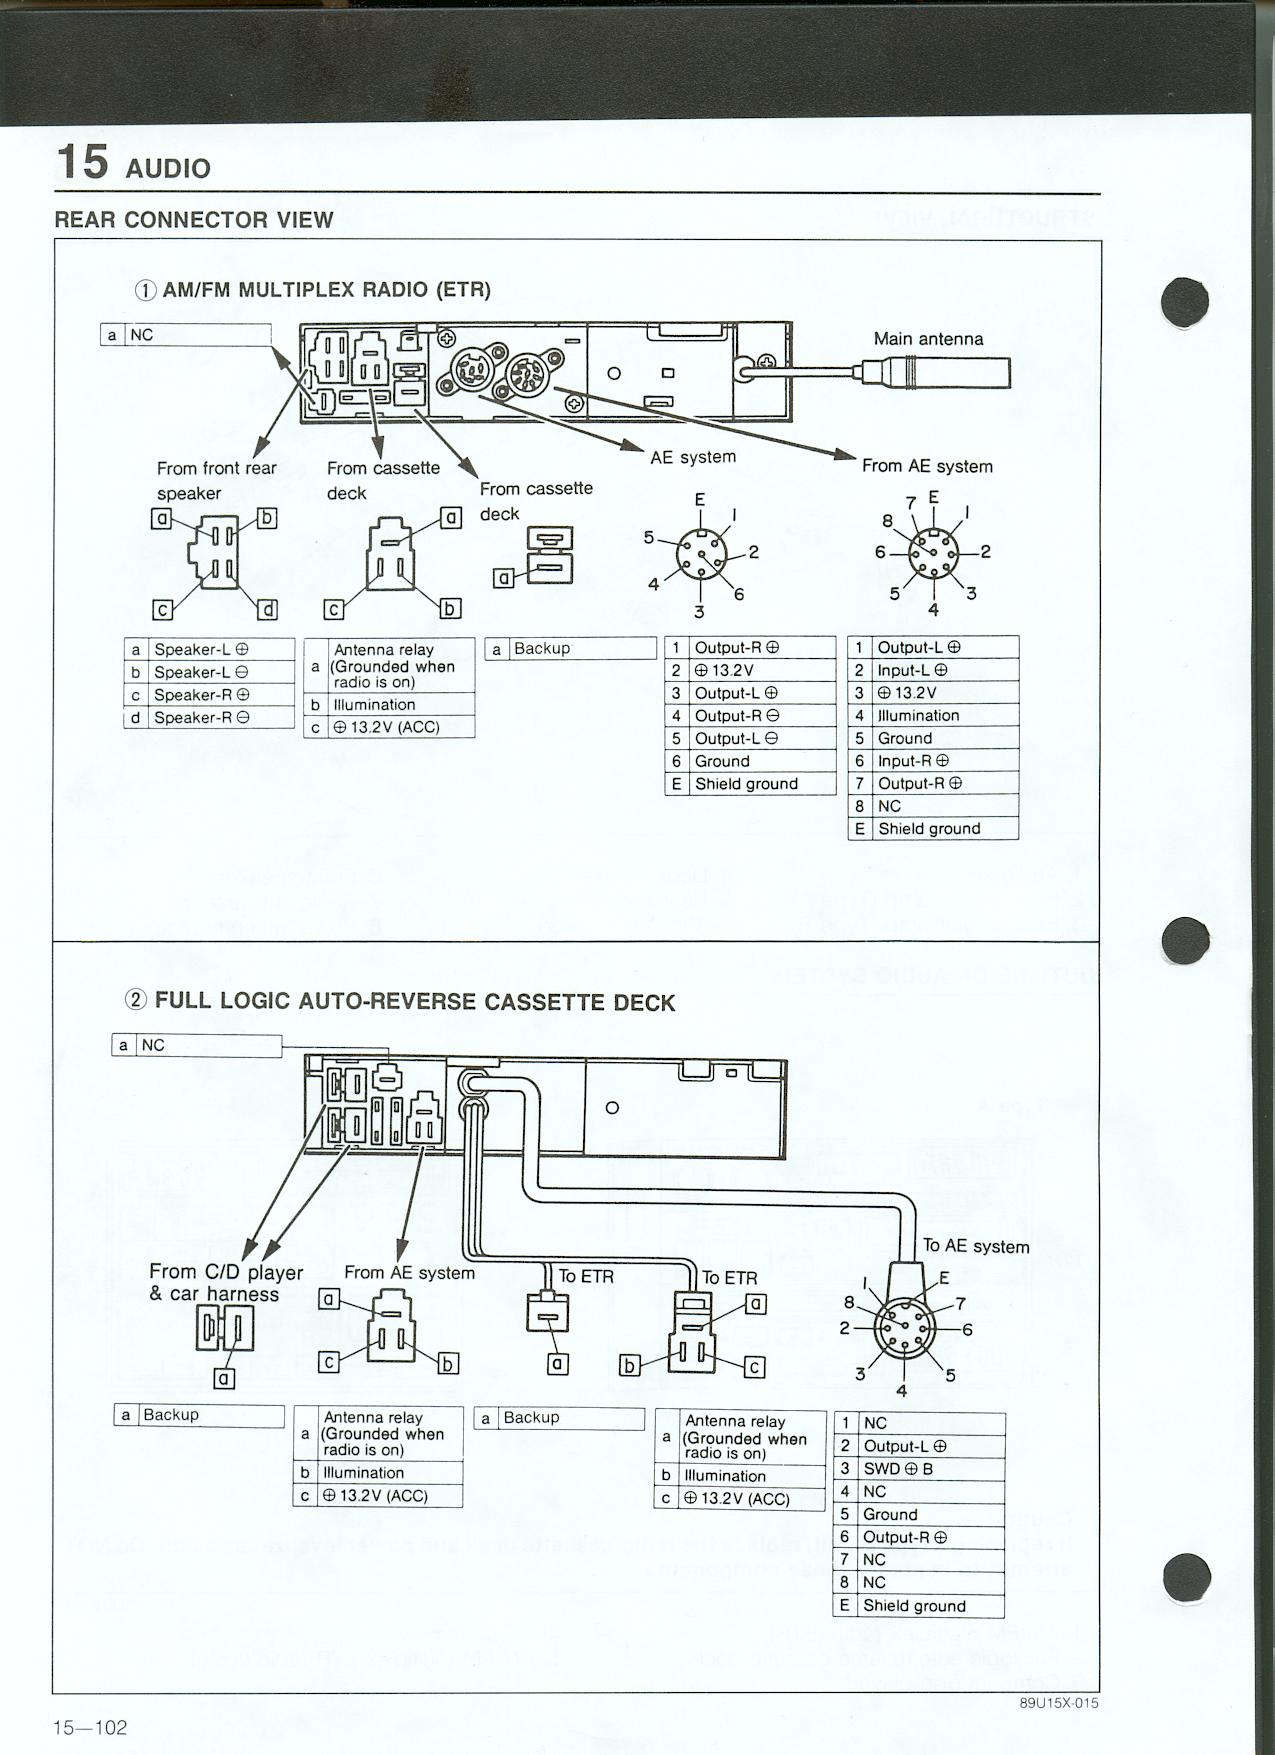 Mazda 929 Wiring Diagram Diagrams B2000 Ignition 1990 Forum Rh Forums Mazdaworld Org B2200